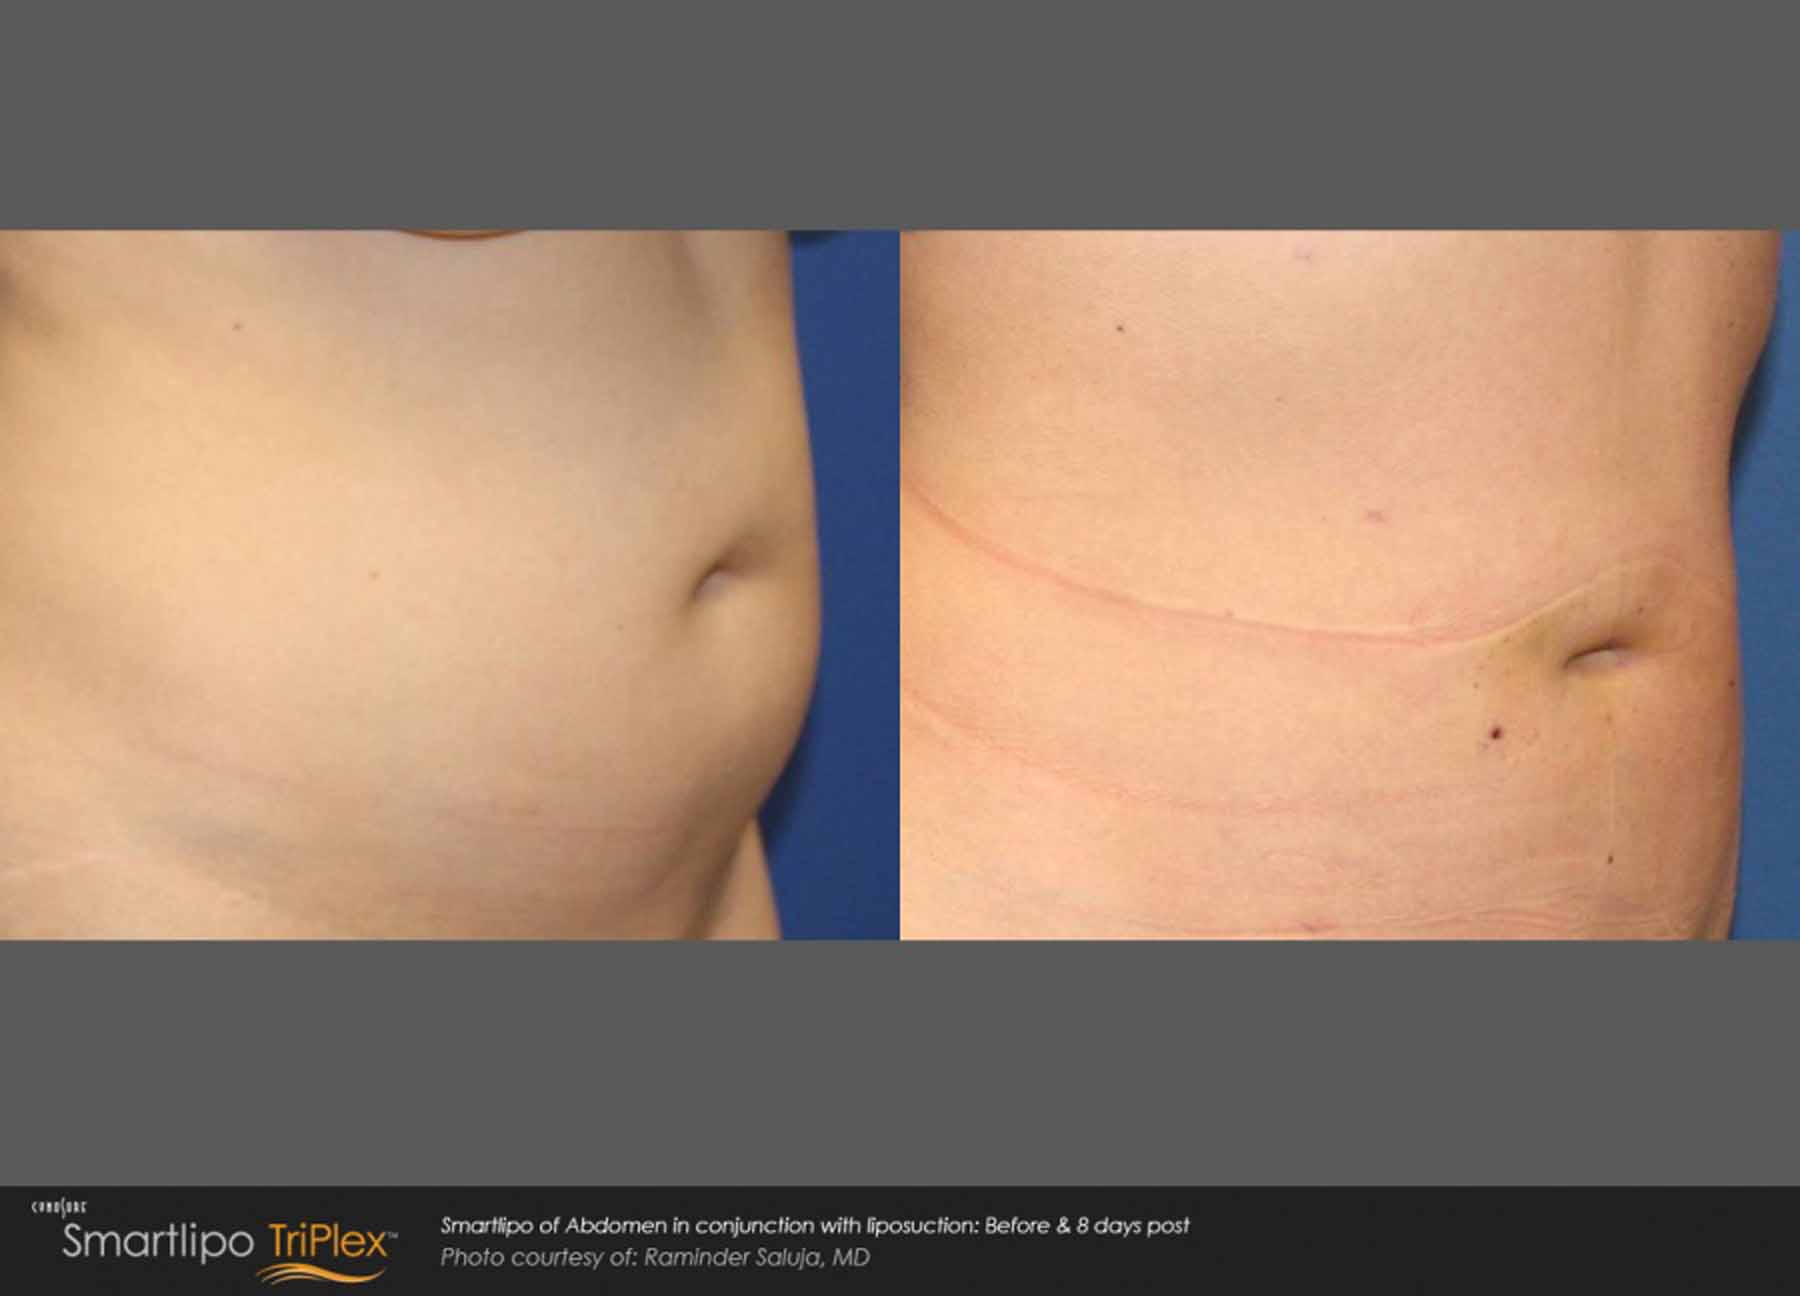 Abdomen before and after being treated with SmartLipo TriPlex